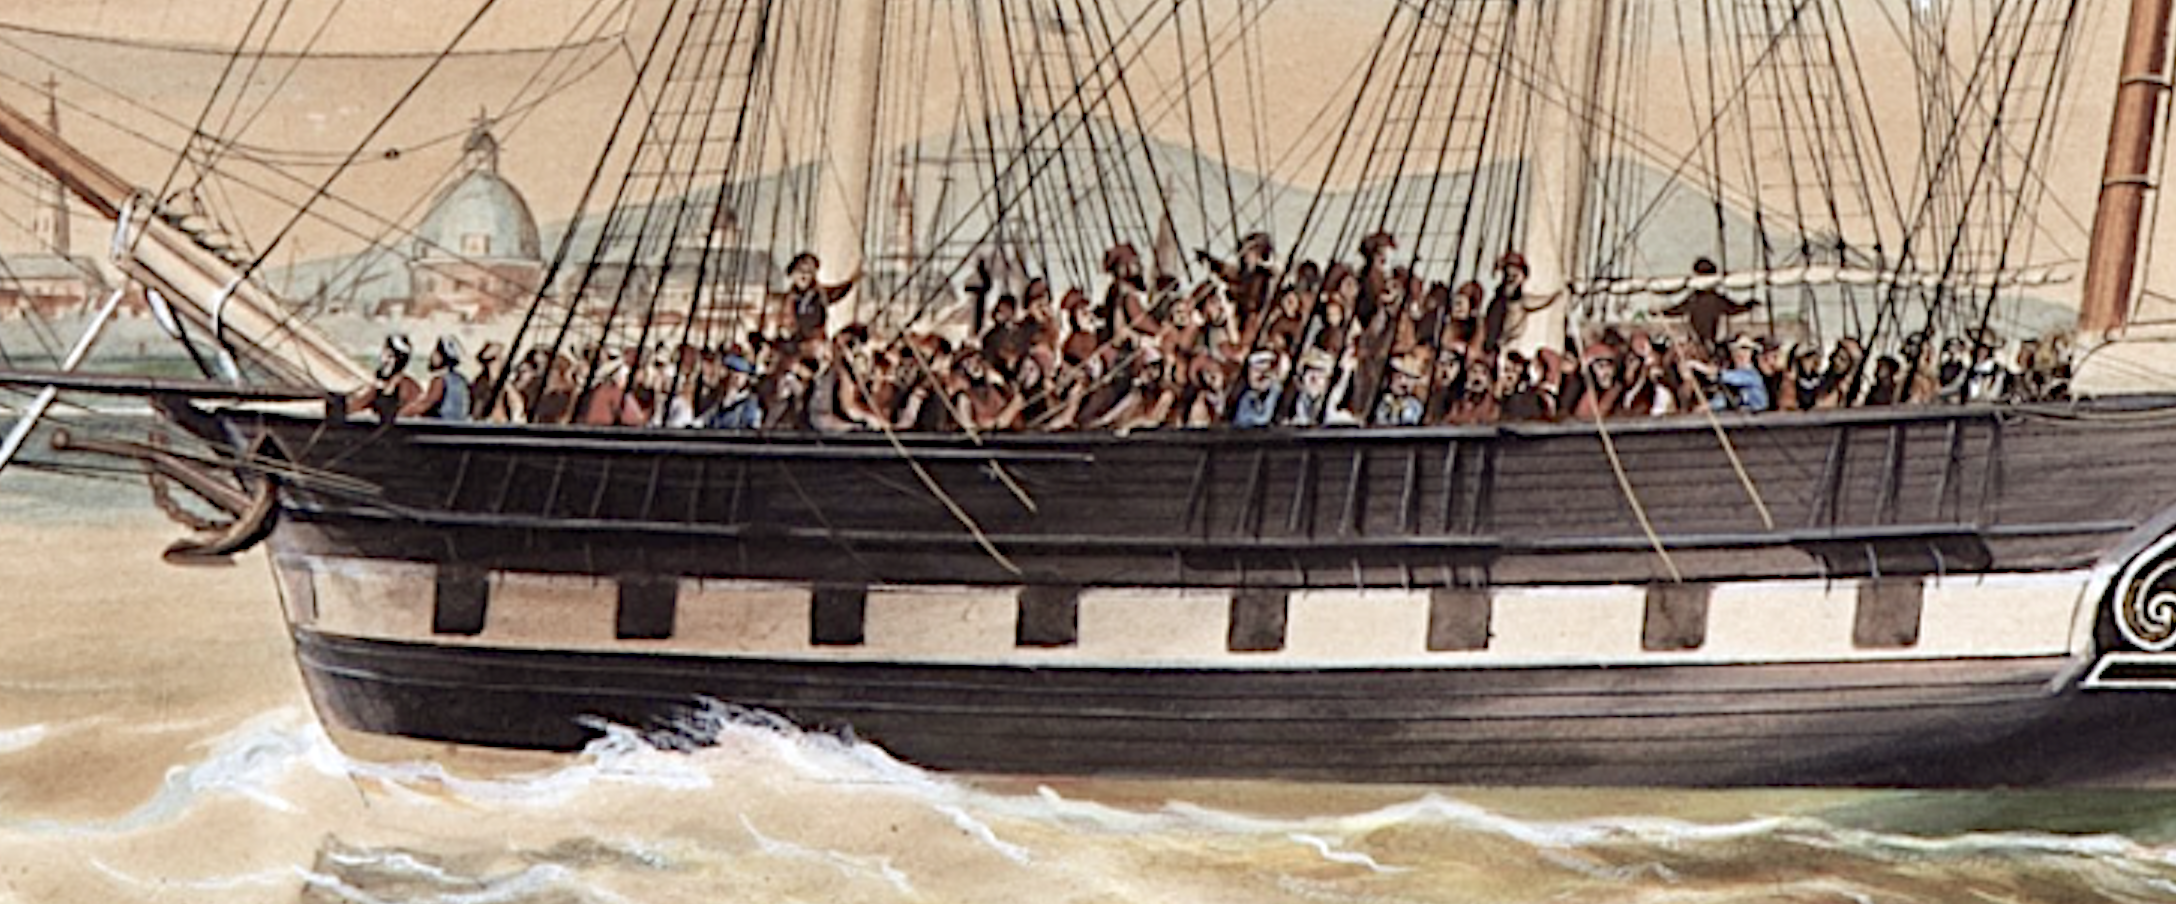 Detail of deported Spanish revolutionaries of 1848 onboard the Dutch barque Reijerwaard arriving in the Philippines.